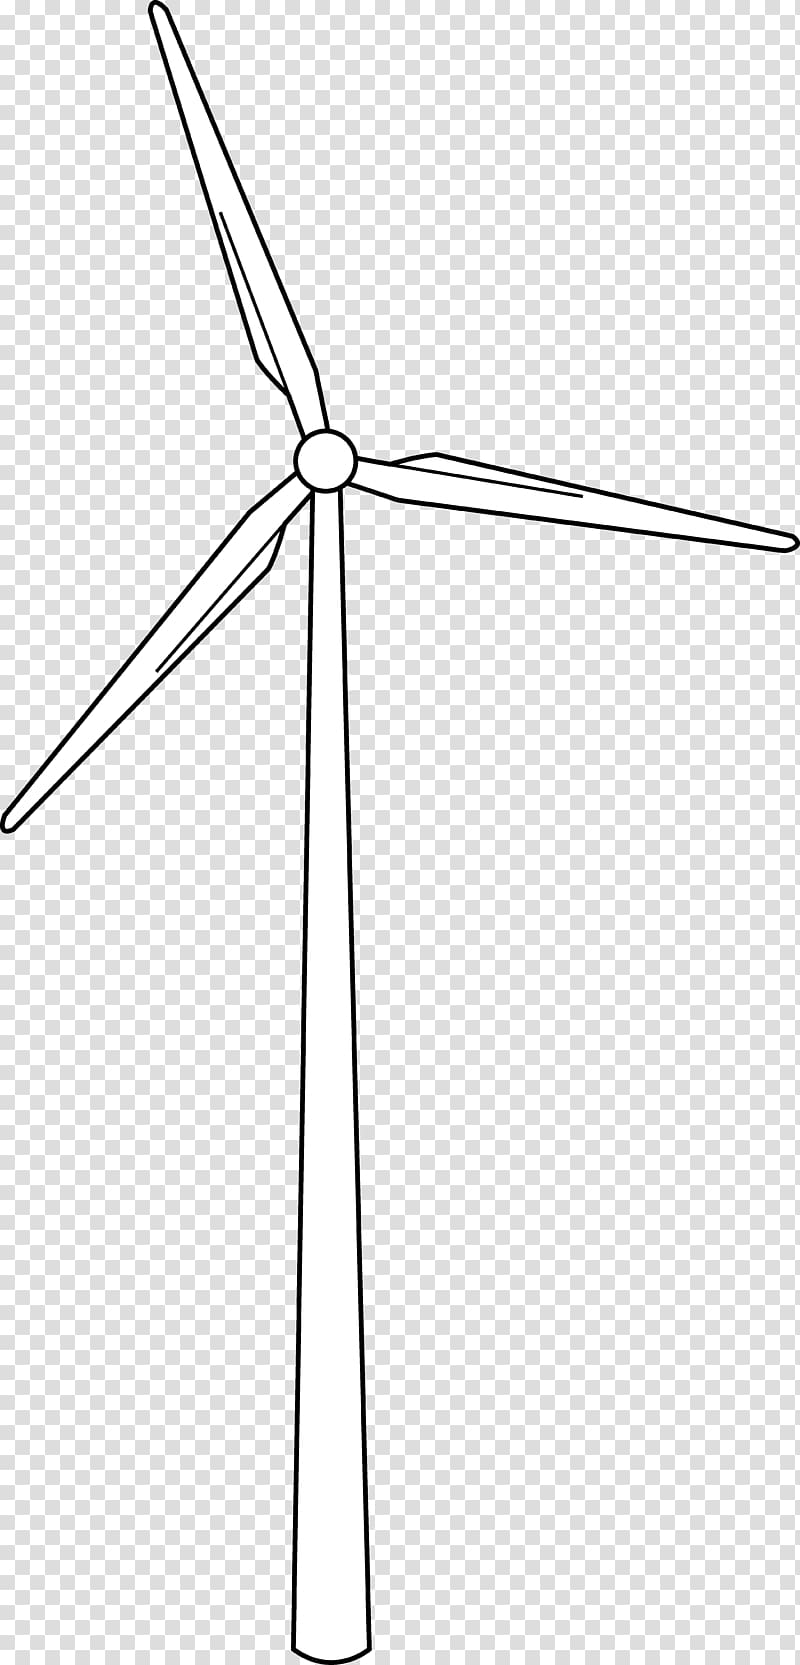 Wind farm Wind turbine Wind power Drawing, windmill.